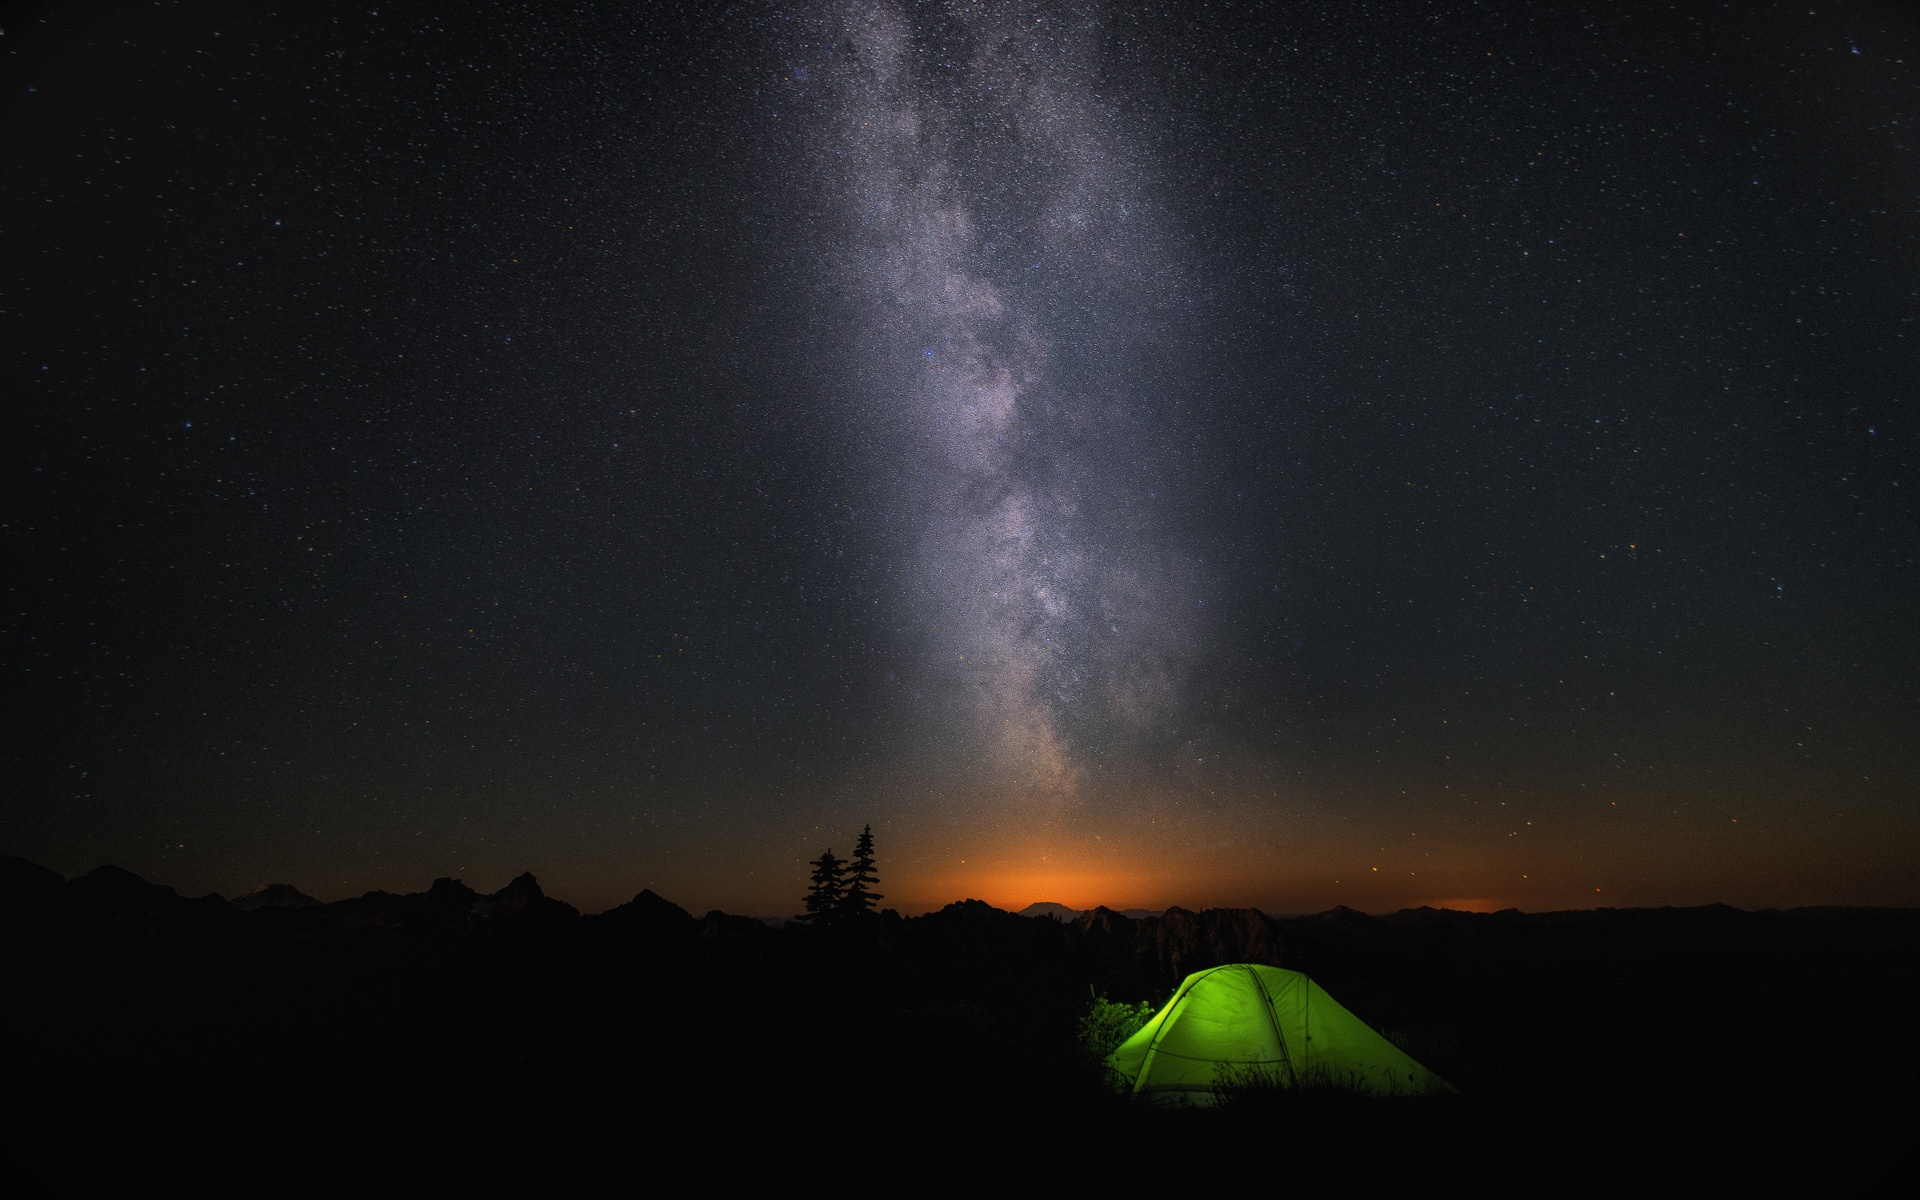 night camp sky stars wallpapers in jpg format for free download